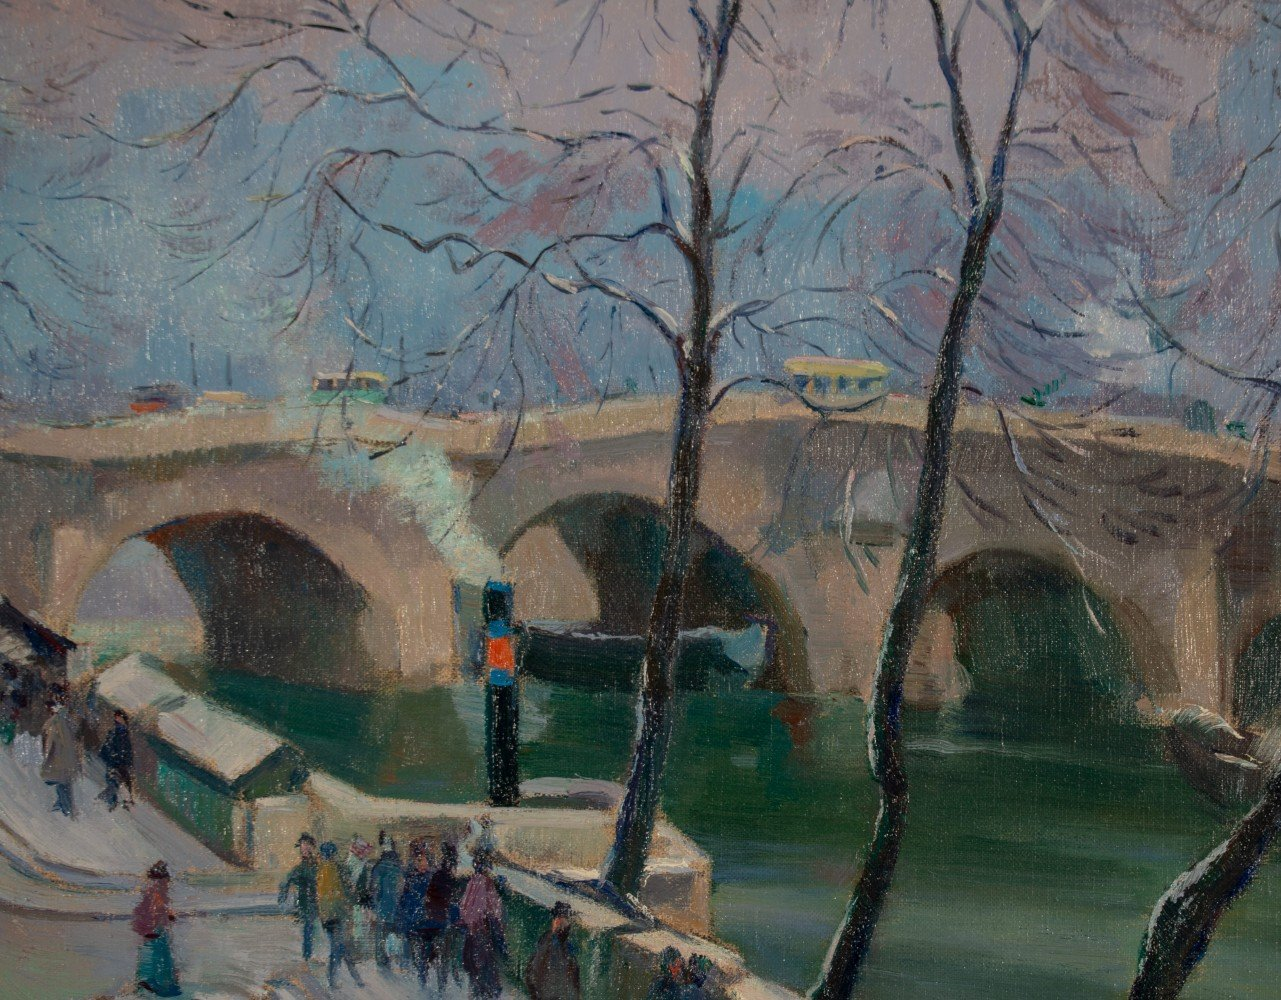 Bookstalls along the Seine by Abel G. Warshawsky